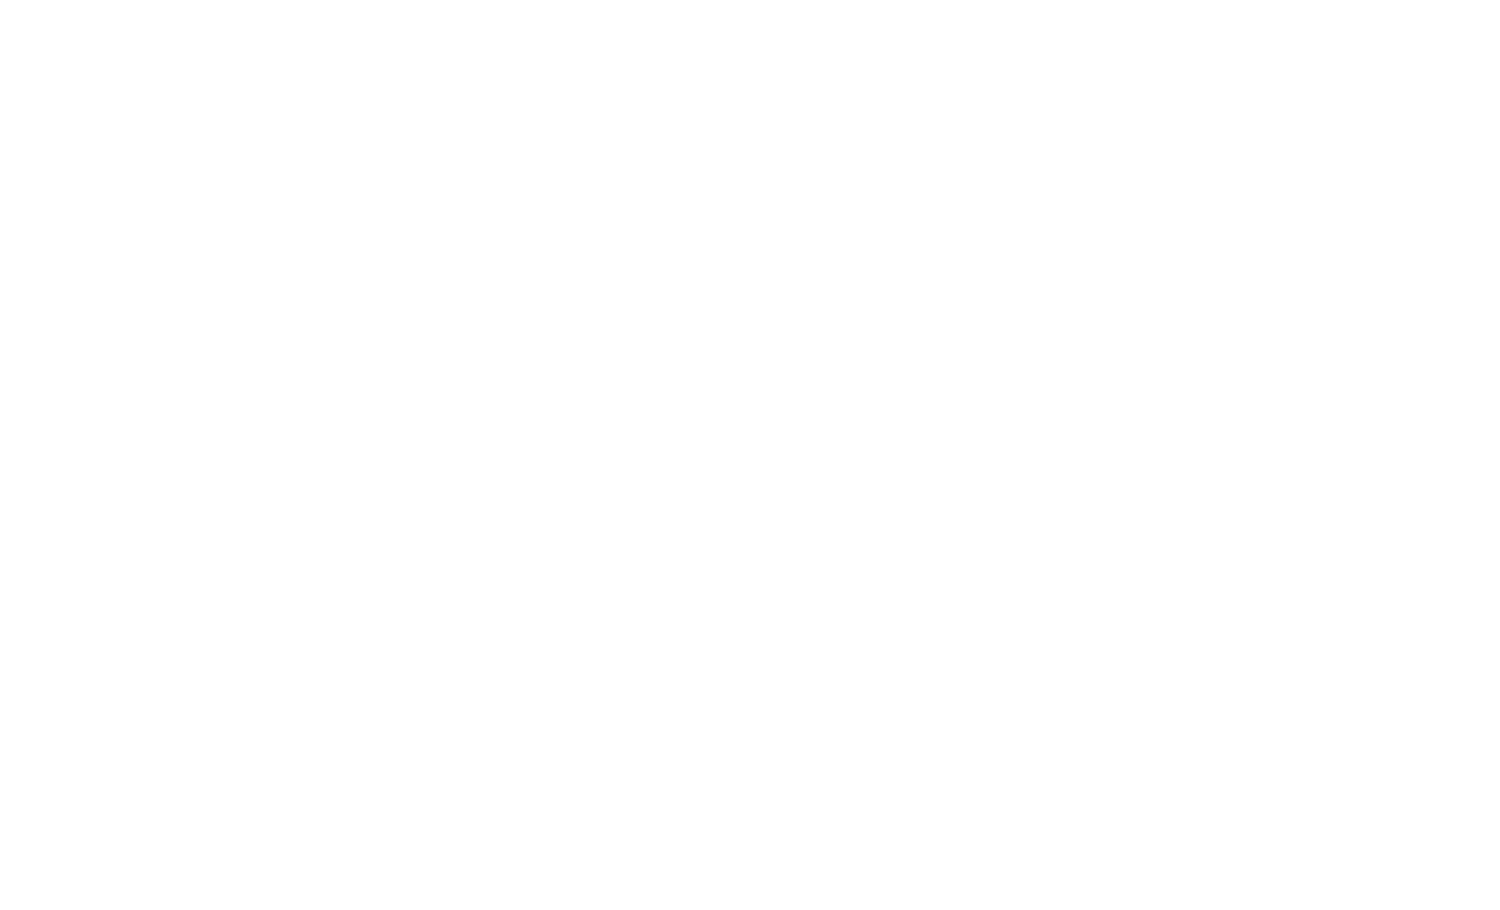 Teak Neighborhood Grill Logo White